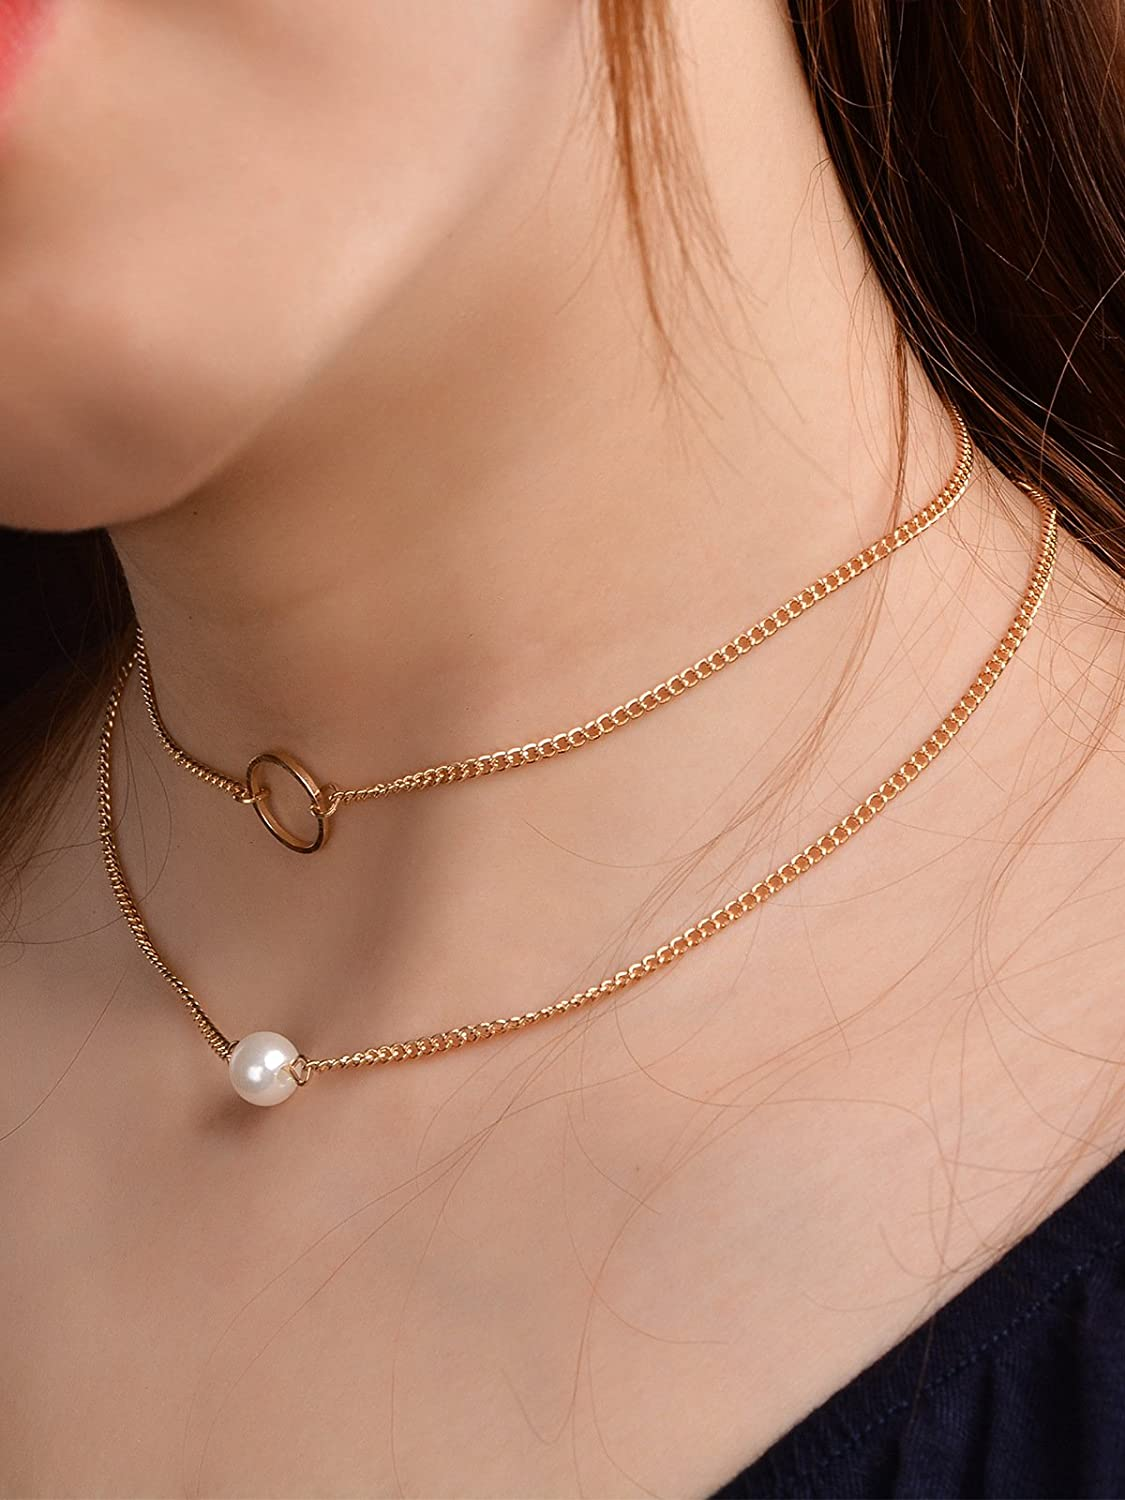 Frodete Two Layer Necklaces for Women Minimalist Circle Bead Pearl Double Chain Pendant Necklace Necklace Gold Gift Jewelry